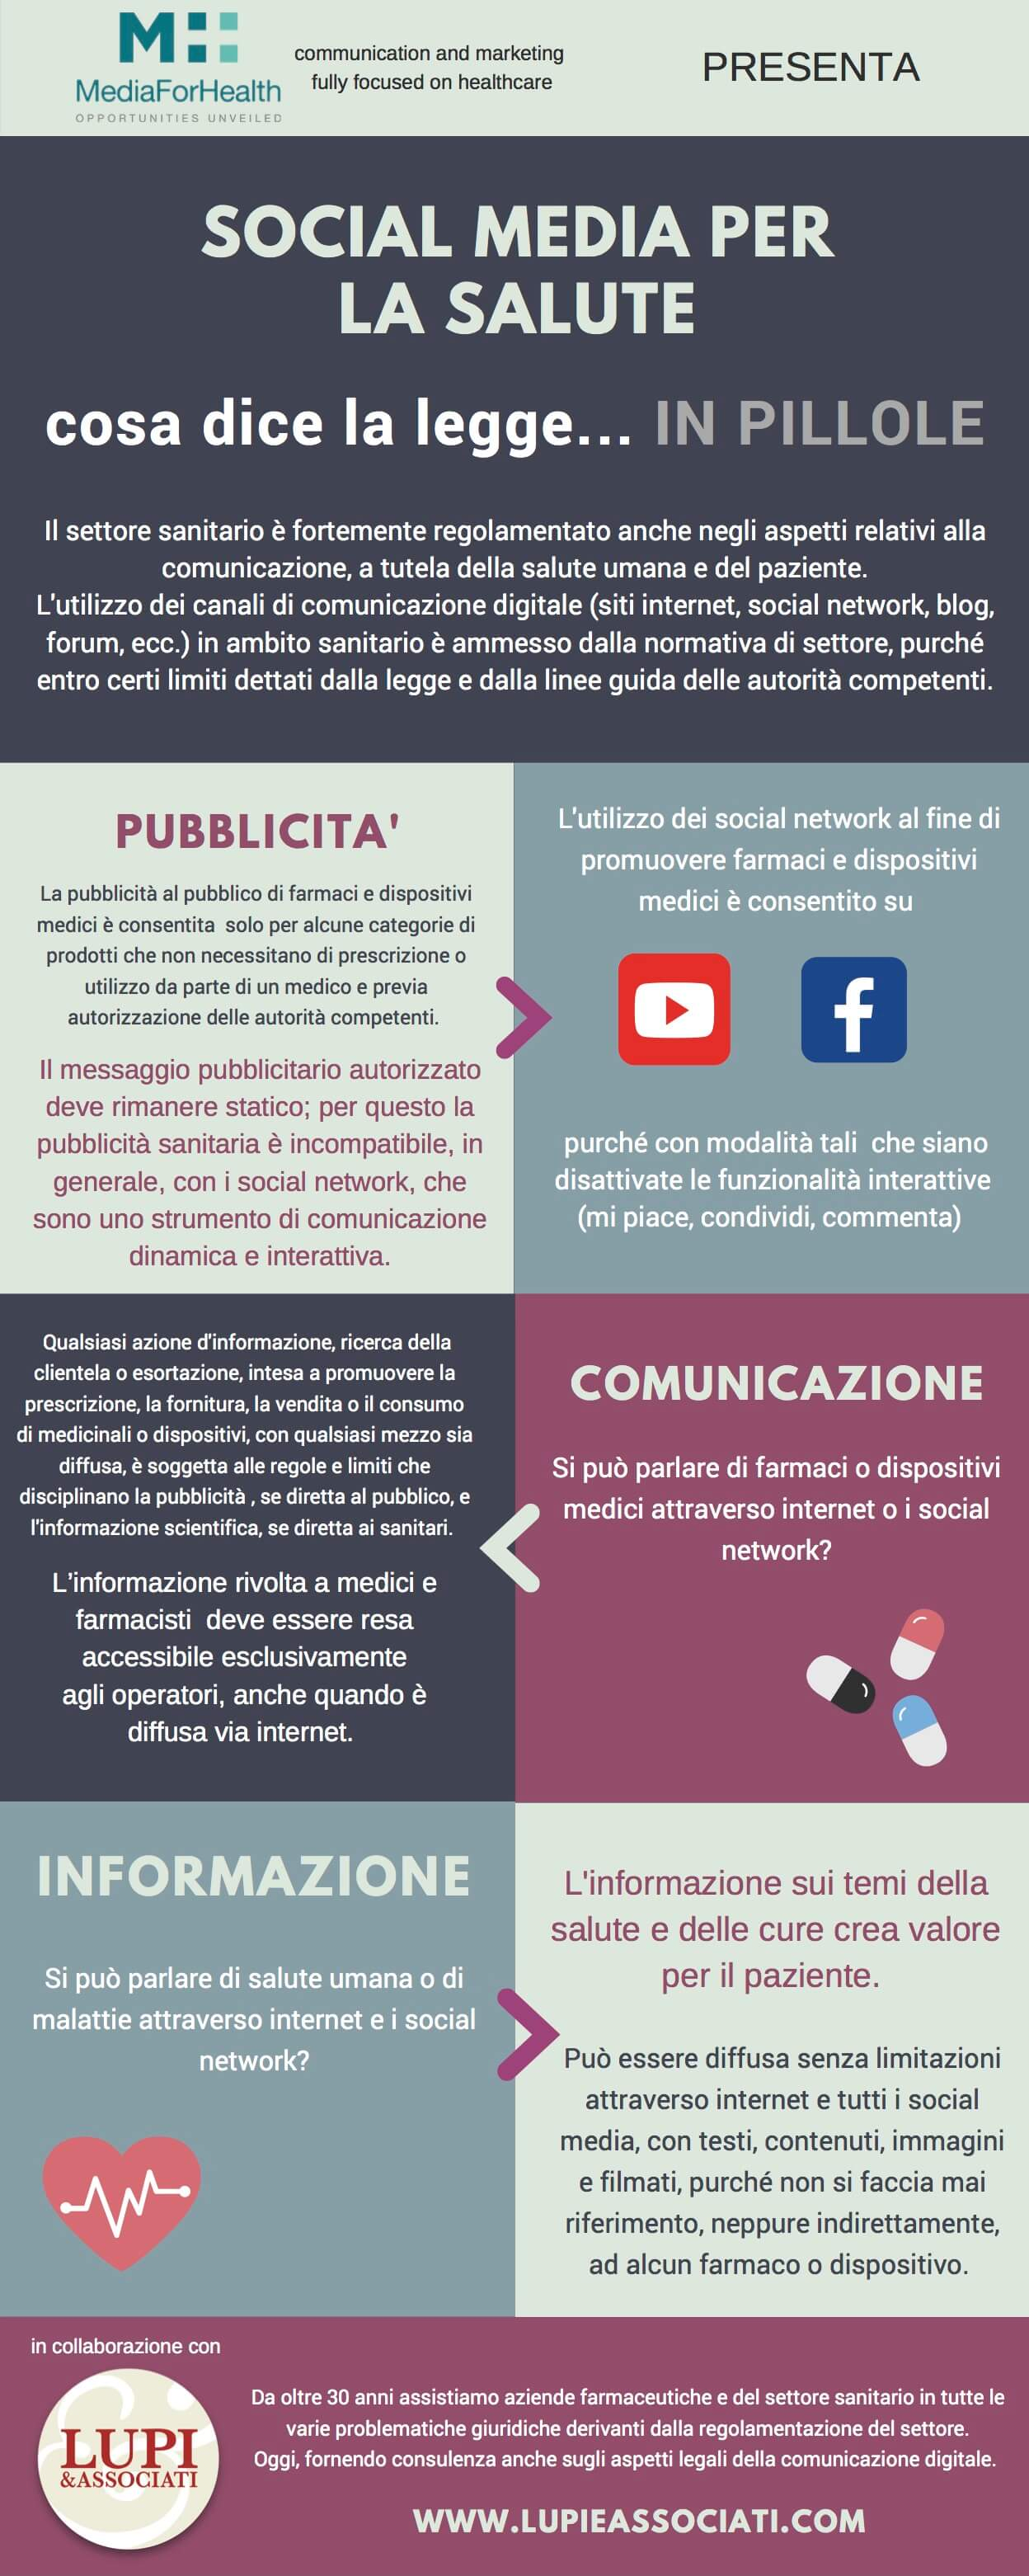 infografica social media per la salute media for health Studio Lupi